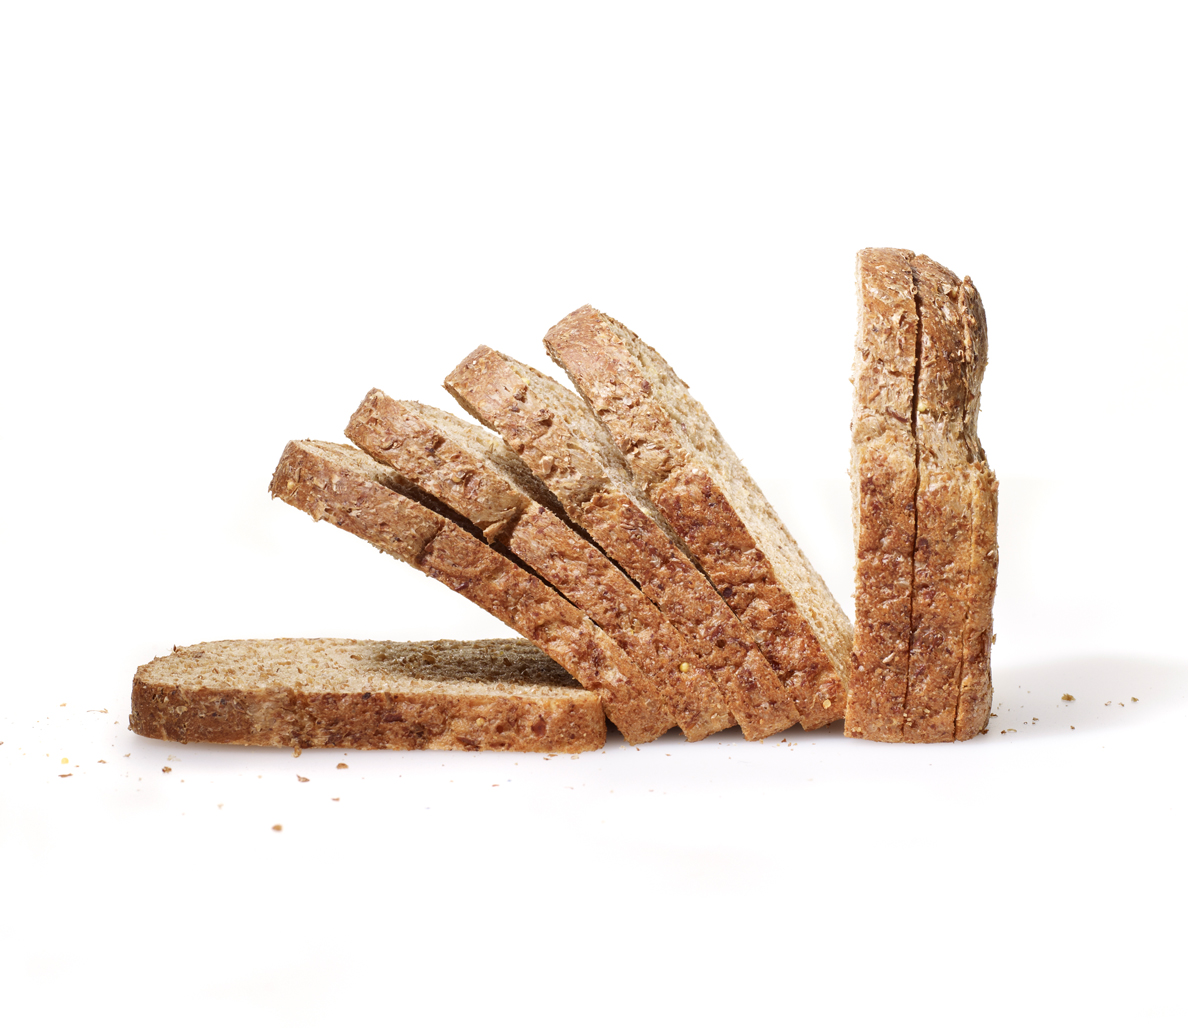 12 Healthiest Types Of Bread And Their Health Benefits Men S Journal